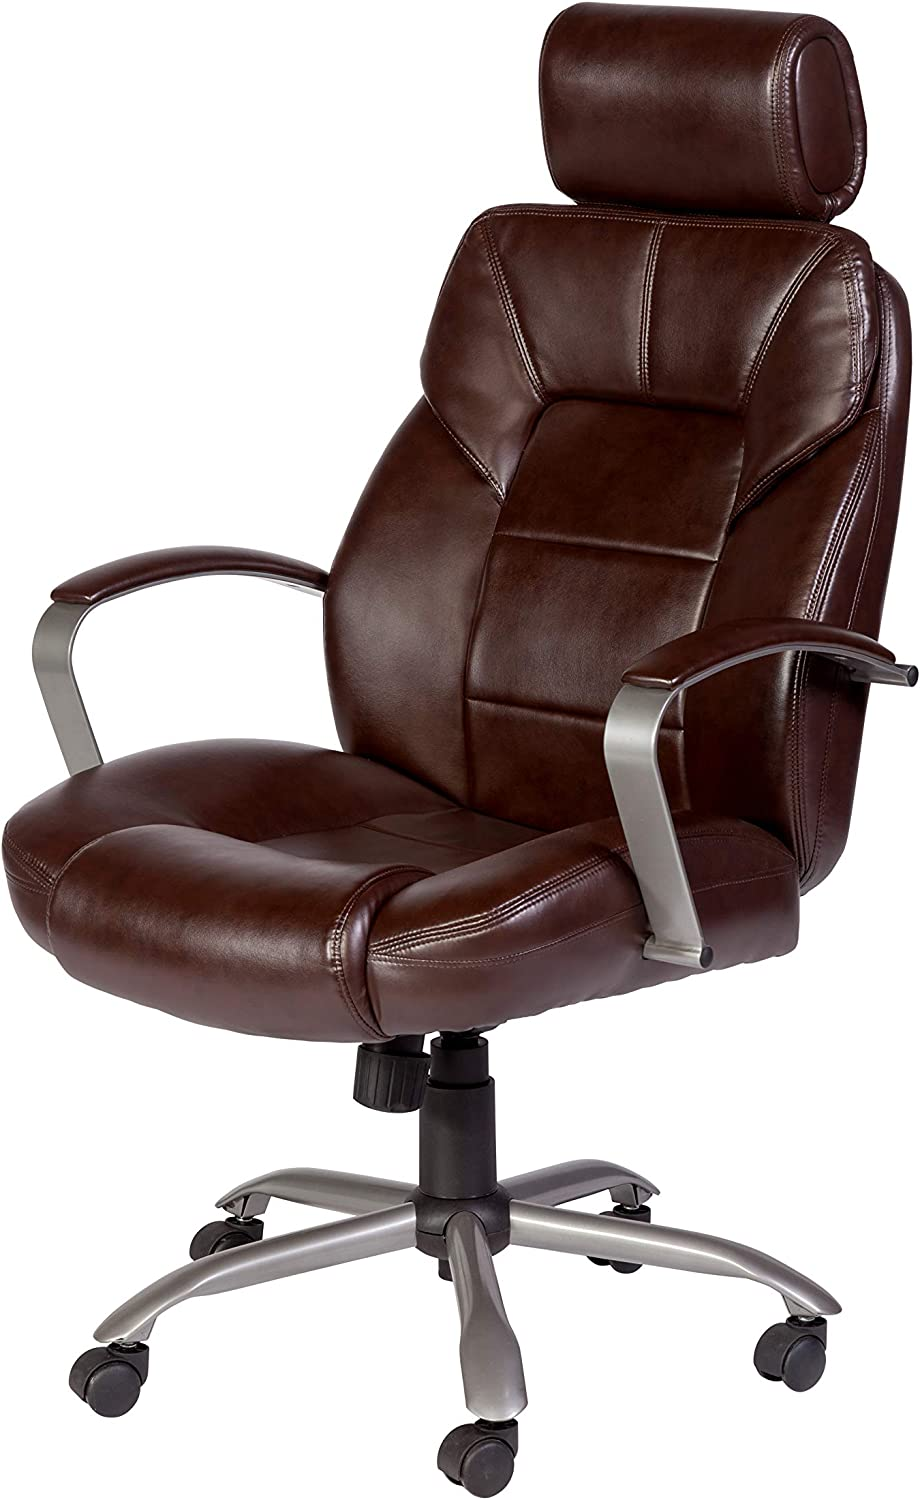 OneSpace 60-5800T11 Commodore II Big & Tall Leather Executive Office Chair, Brown